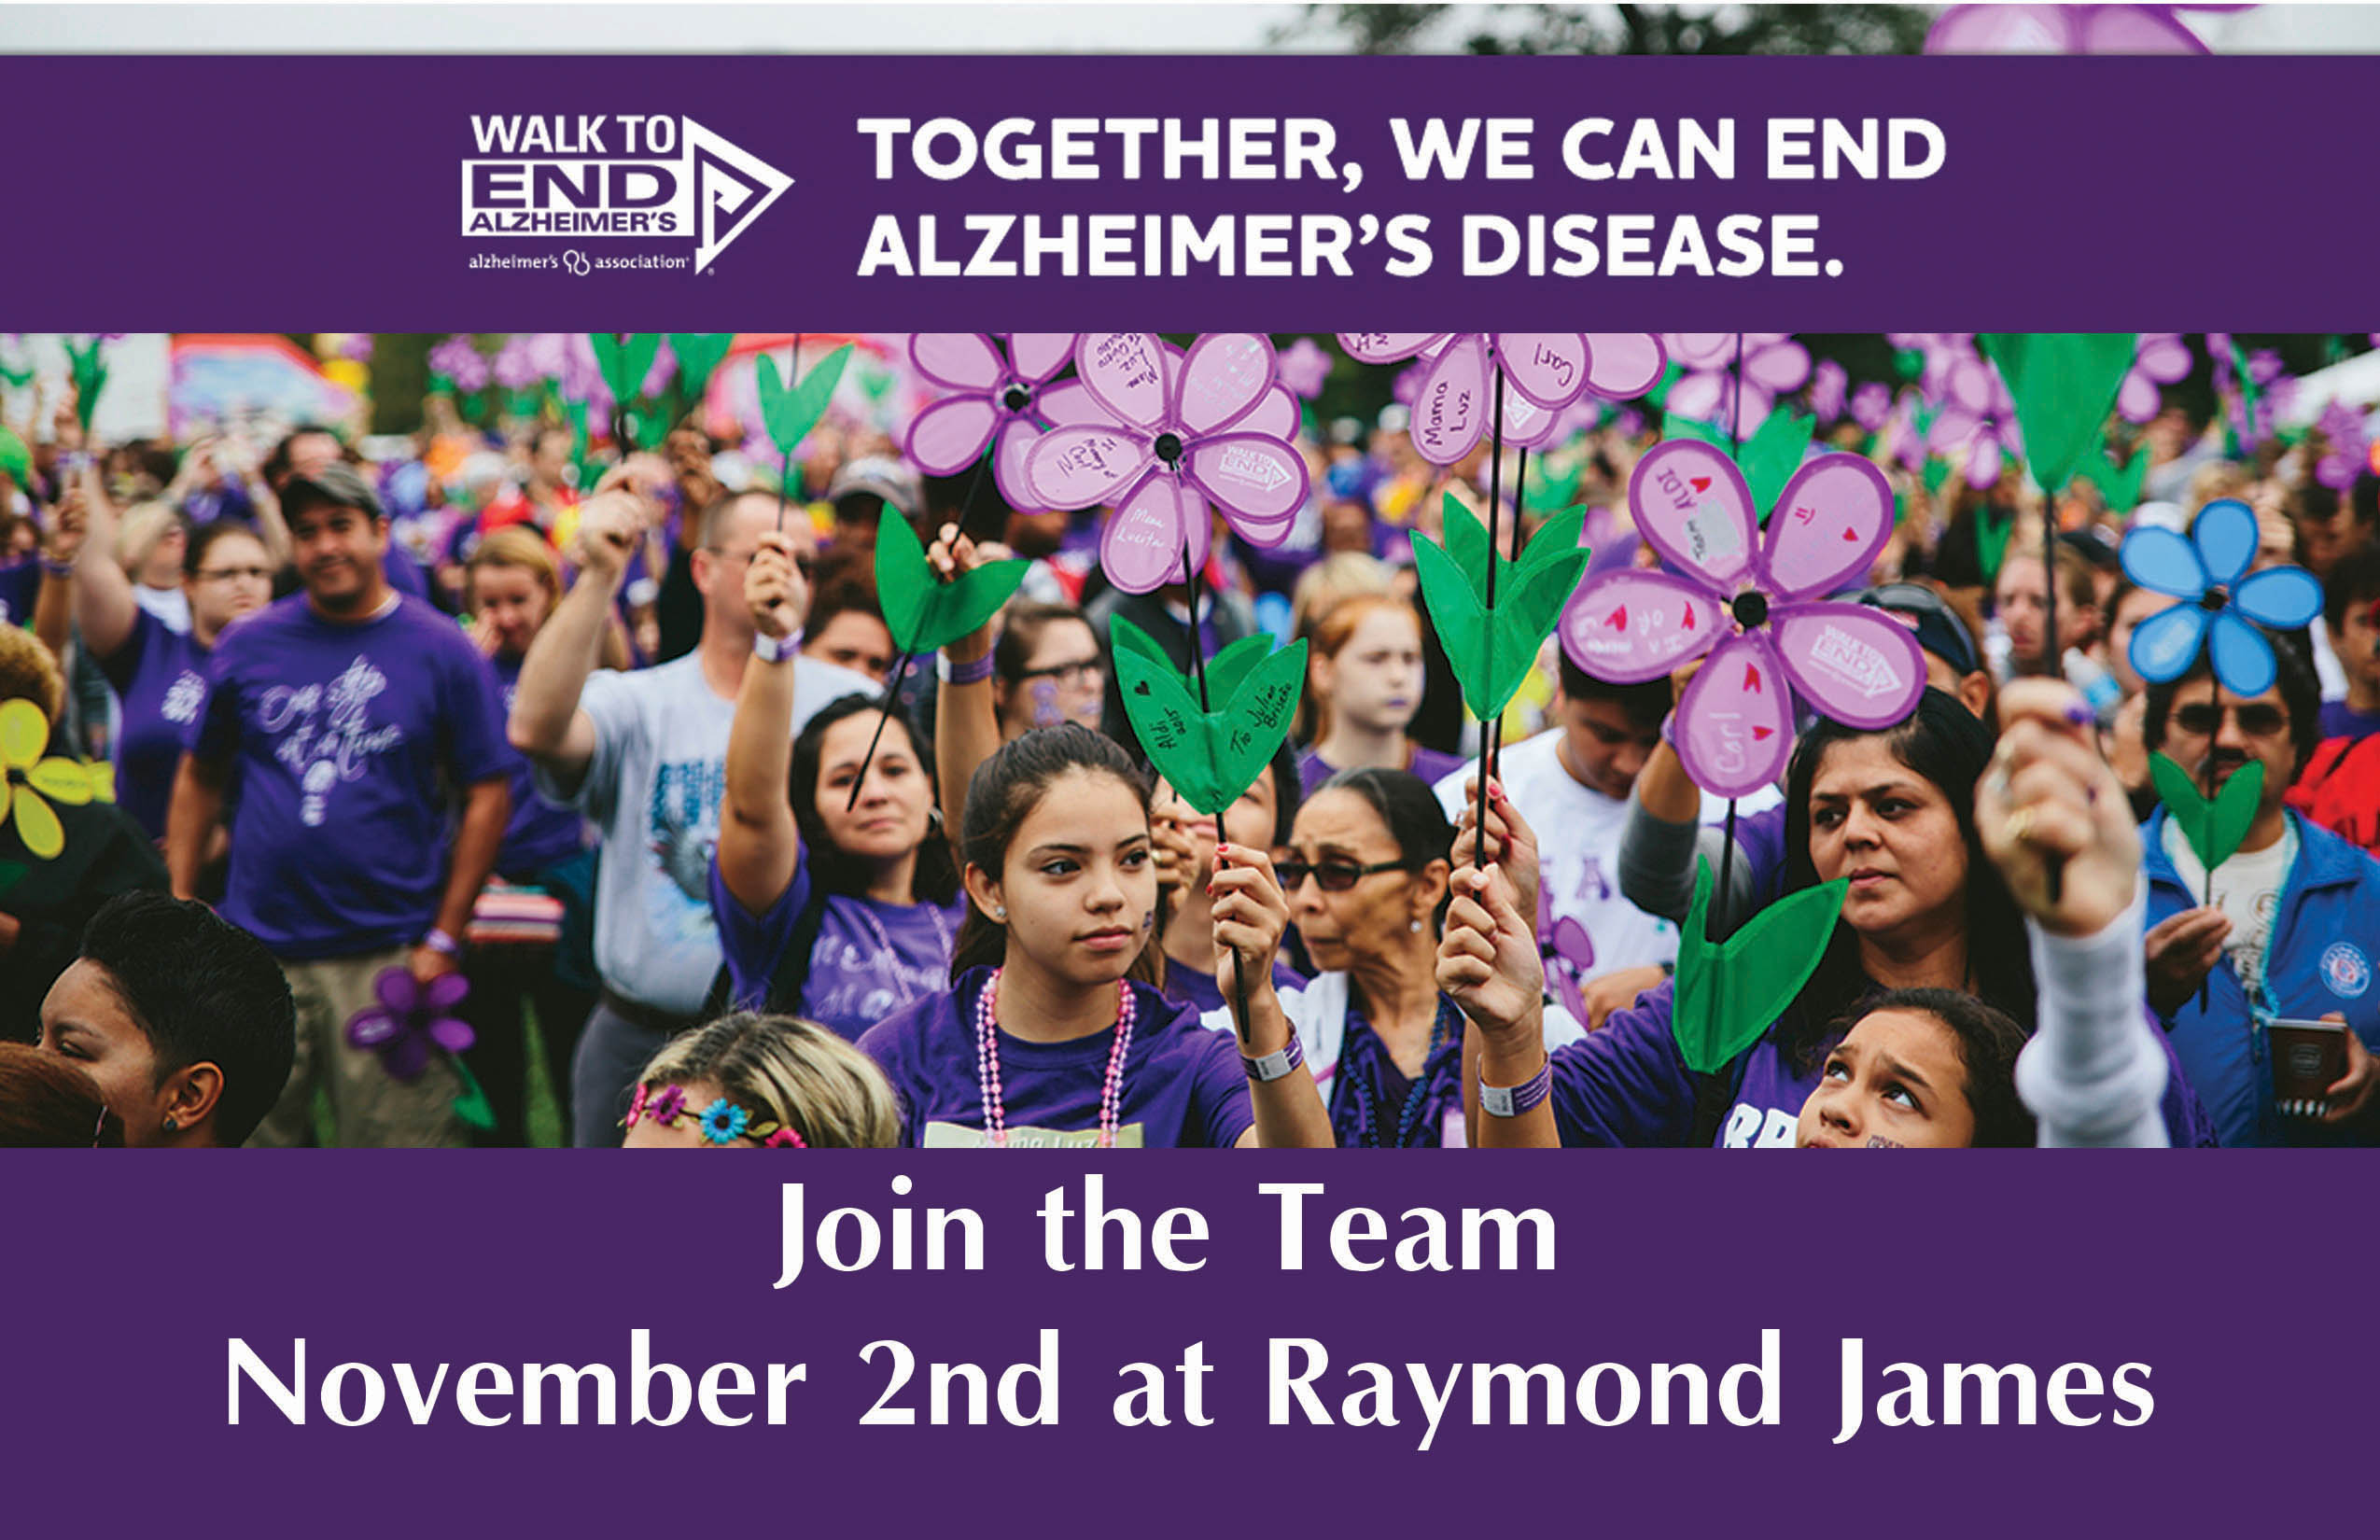 Walk To End Alzheimer's Tampa FL FPCB team